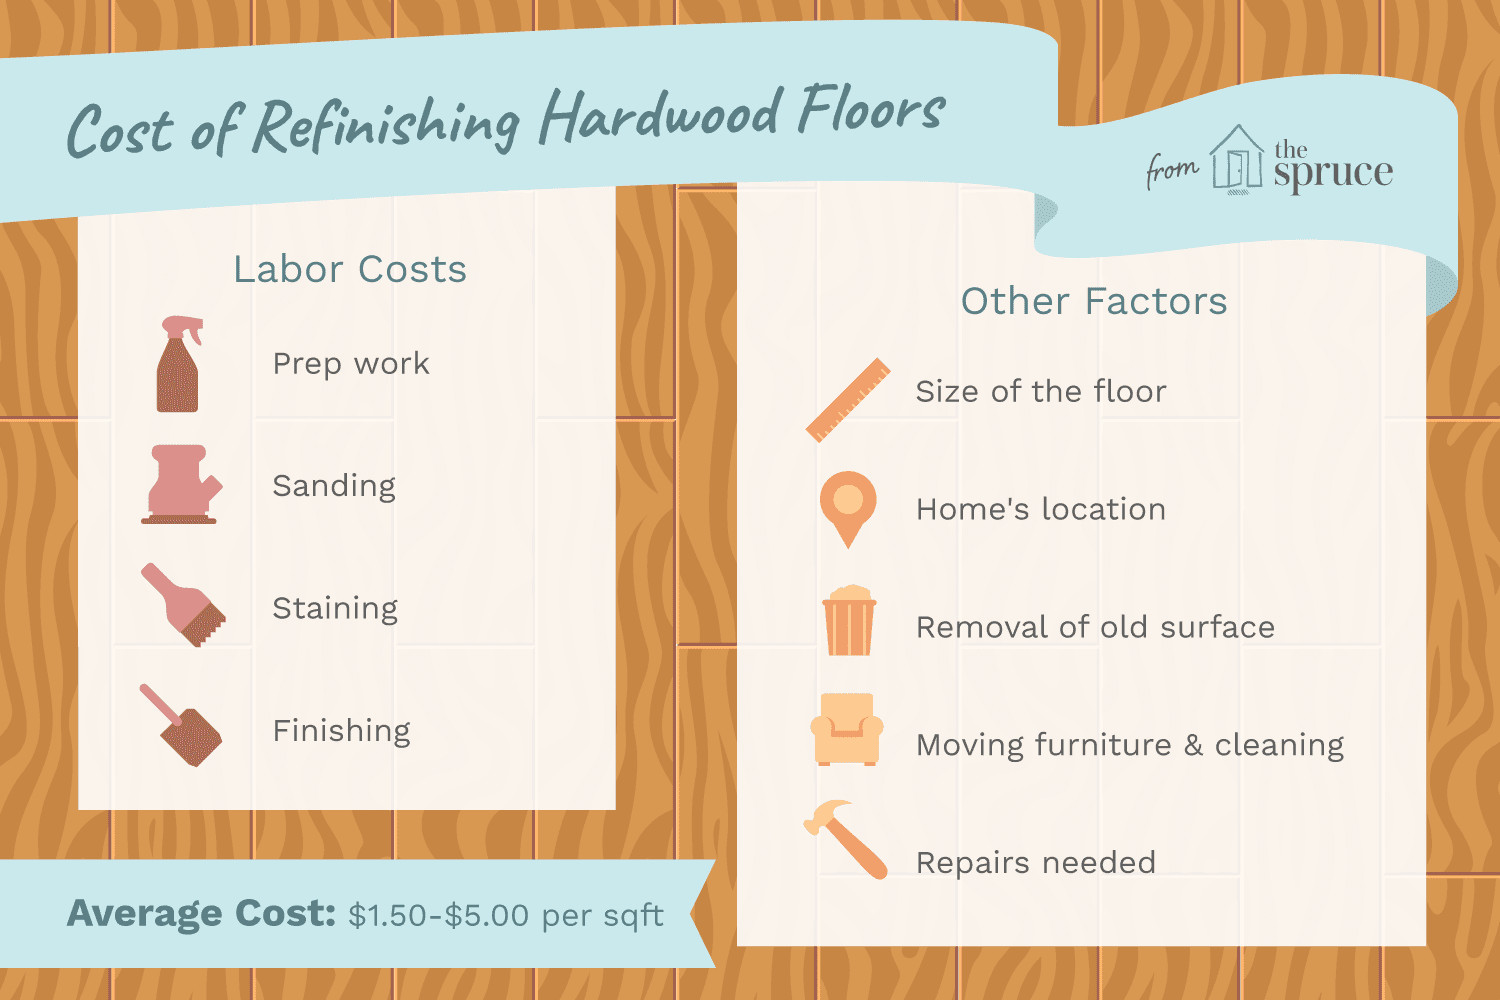 Refinish Hardwood Floors Gray Of the Cost to Refinish Hardwood Floors In Cost to Refinish Hardwood Floors 1314853 Final 5bb6259346e0fb0026825ce2